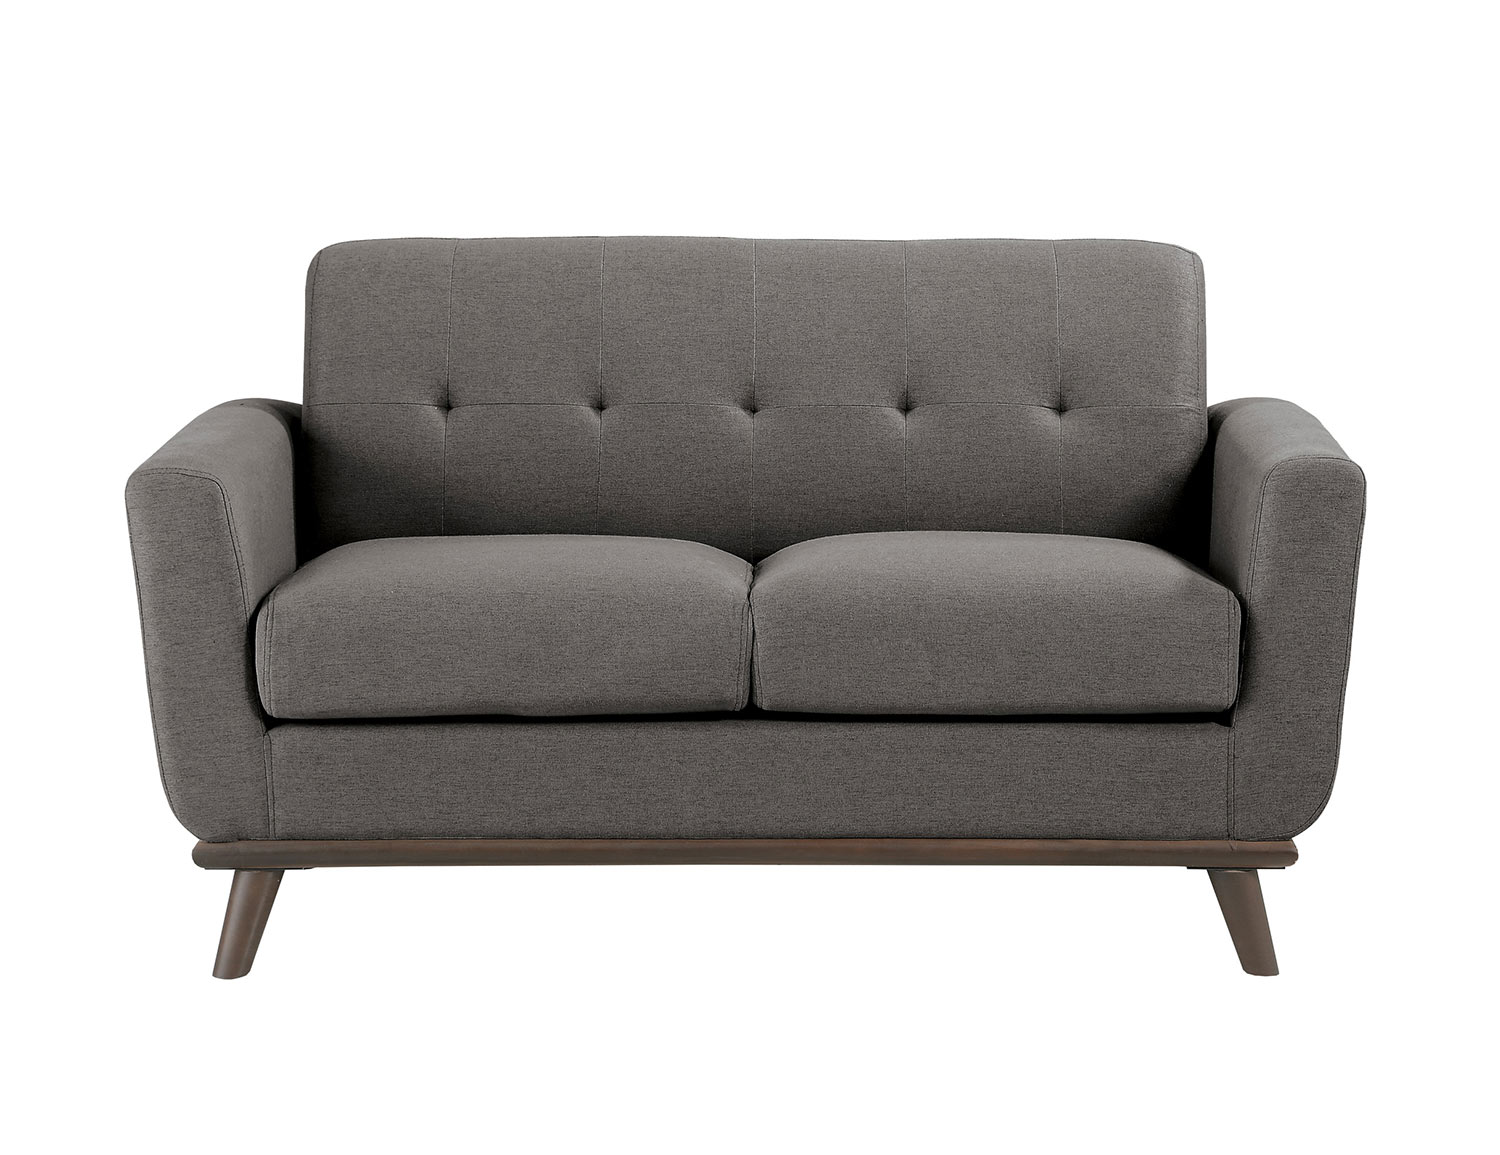 Homelegance Rittman Love Seat - Gray